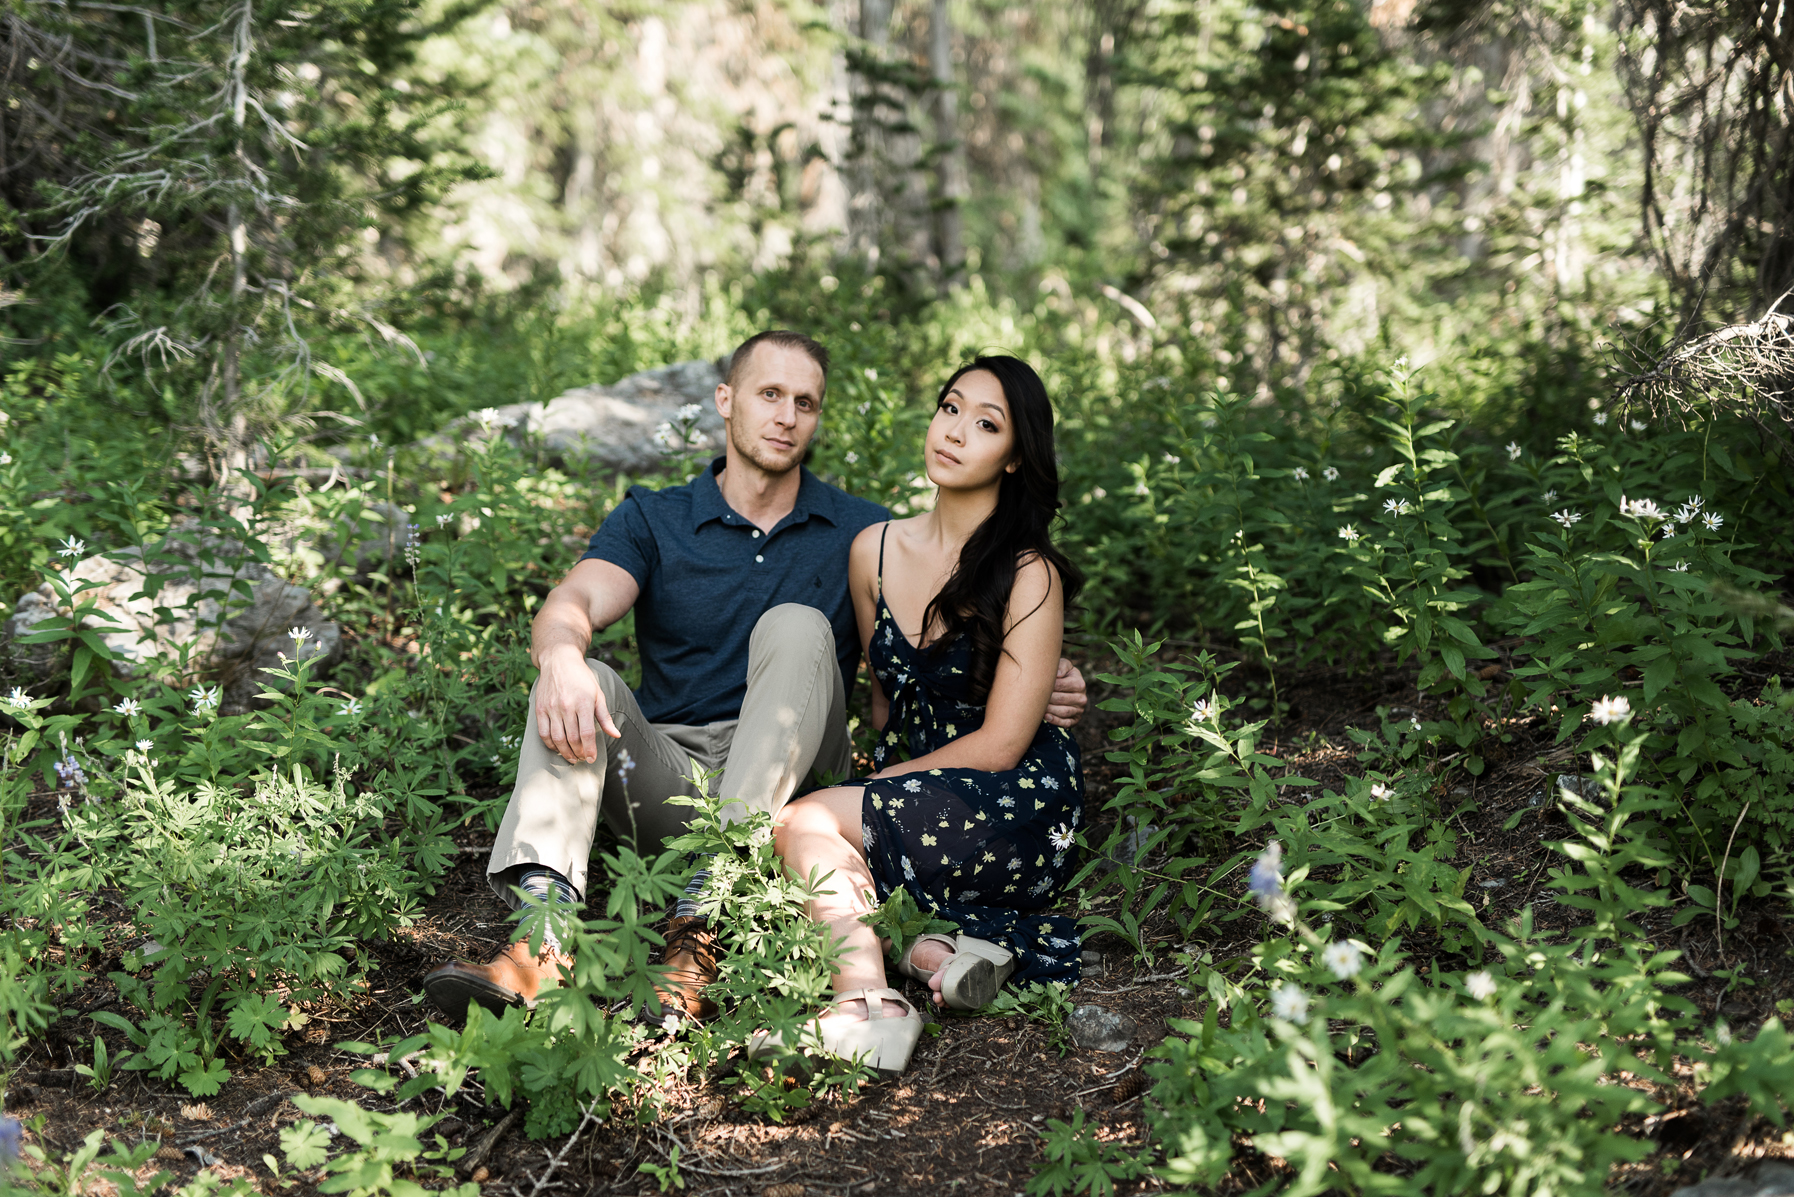 Couple sitting in lush green grass and wildflowers